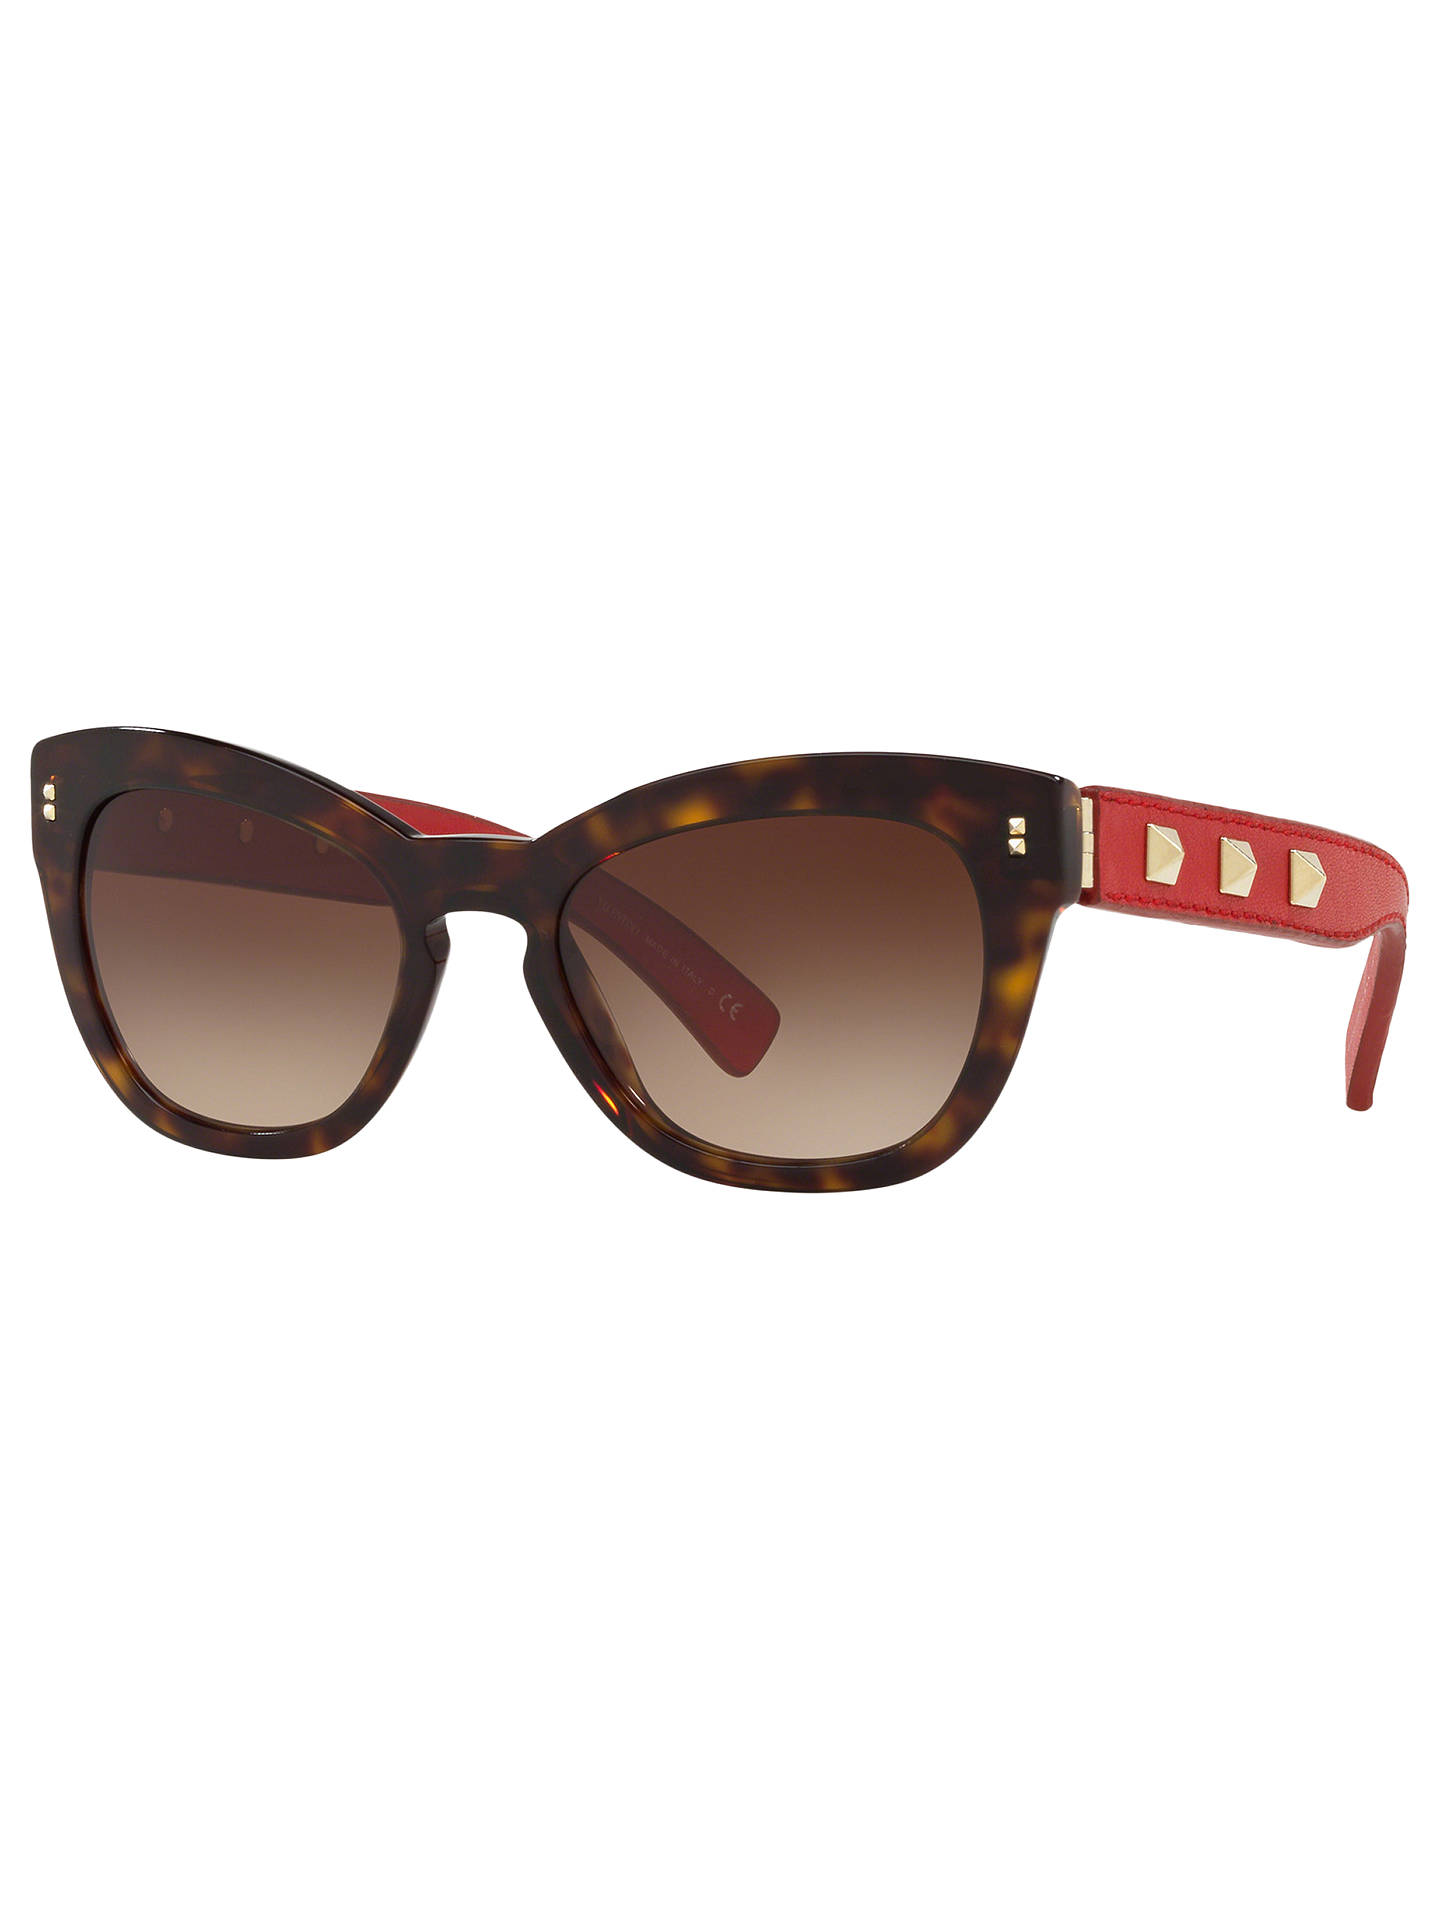 ce470a1270043 Buy Valentino VA4037 Women's Studded Leather Frame Cat's Eye Sunglasses,  Tortoise Red/Brown Gradient ...